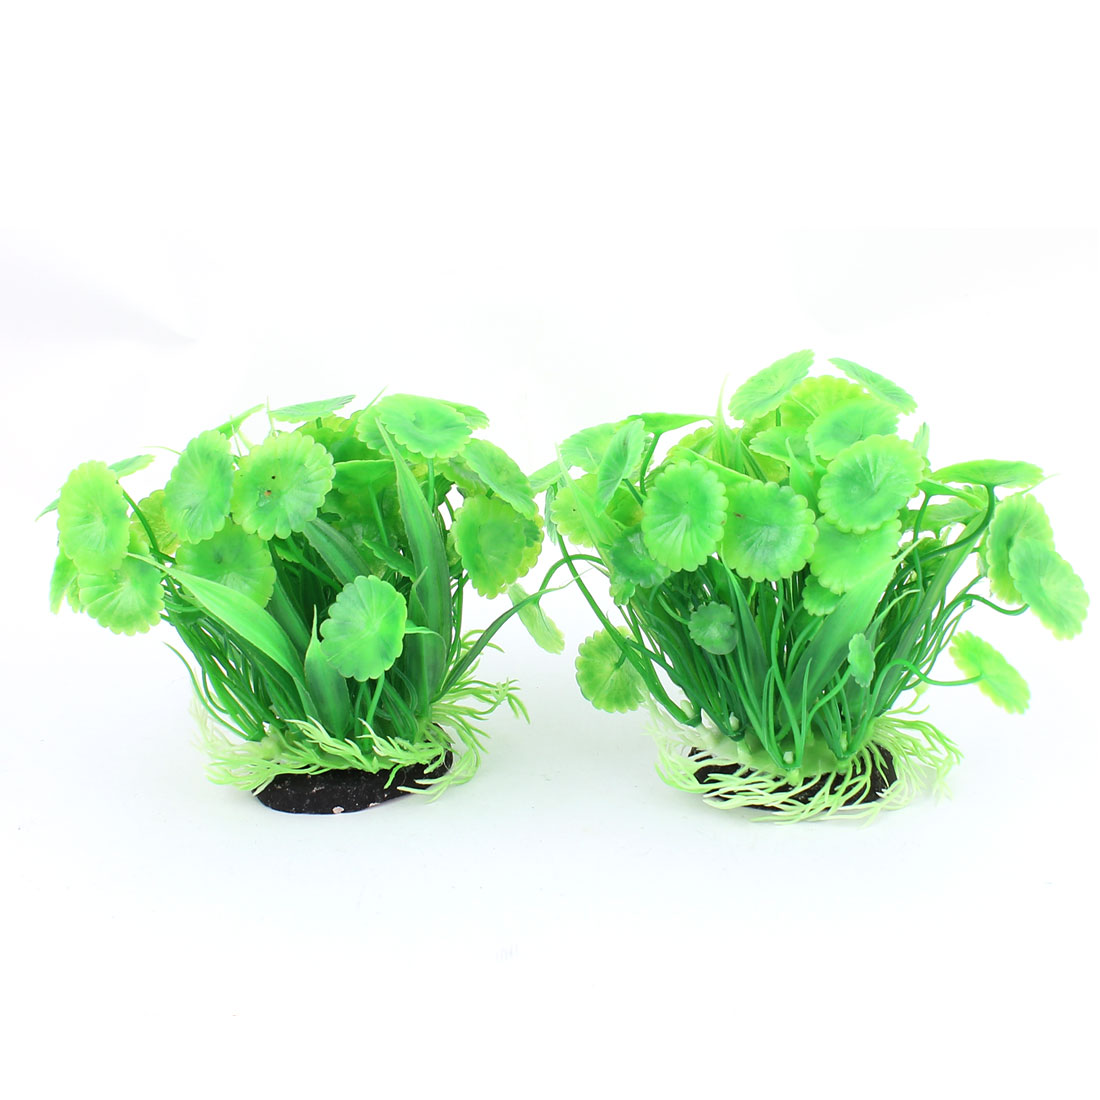 2pcs Green Plastic Manmade Ceramic Base Aquarium Plant Ornament for Fishbowl Fish Tank